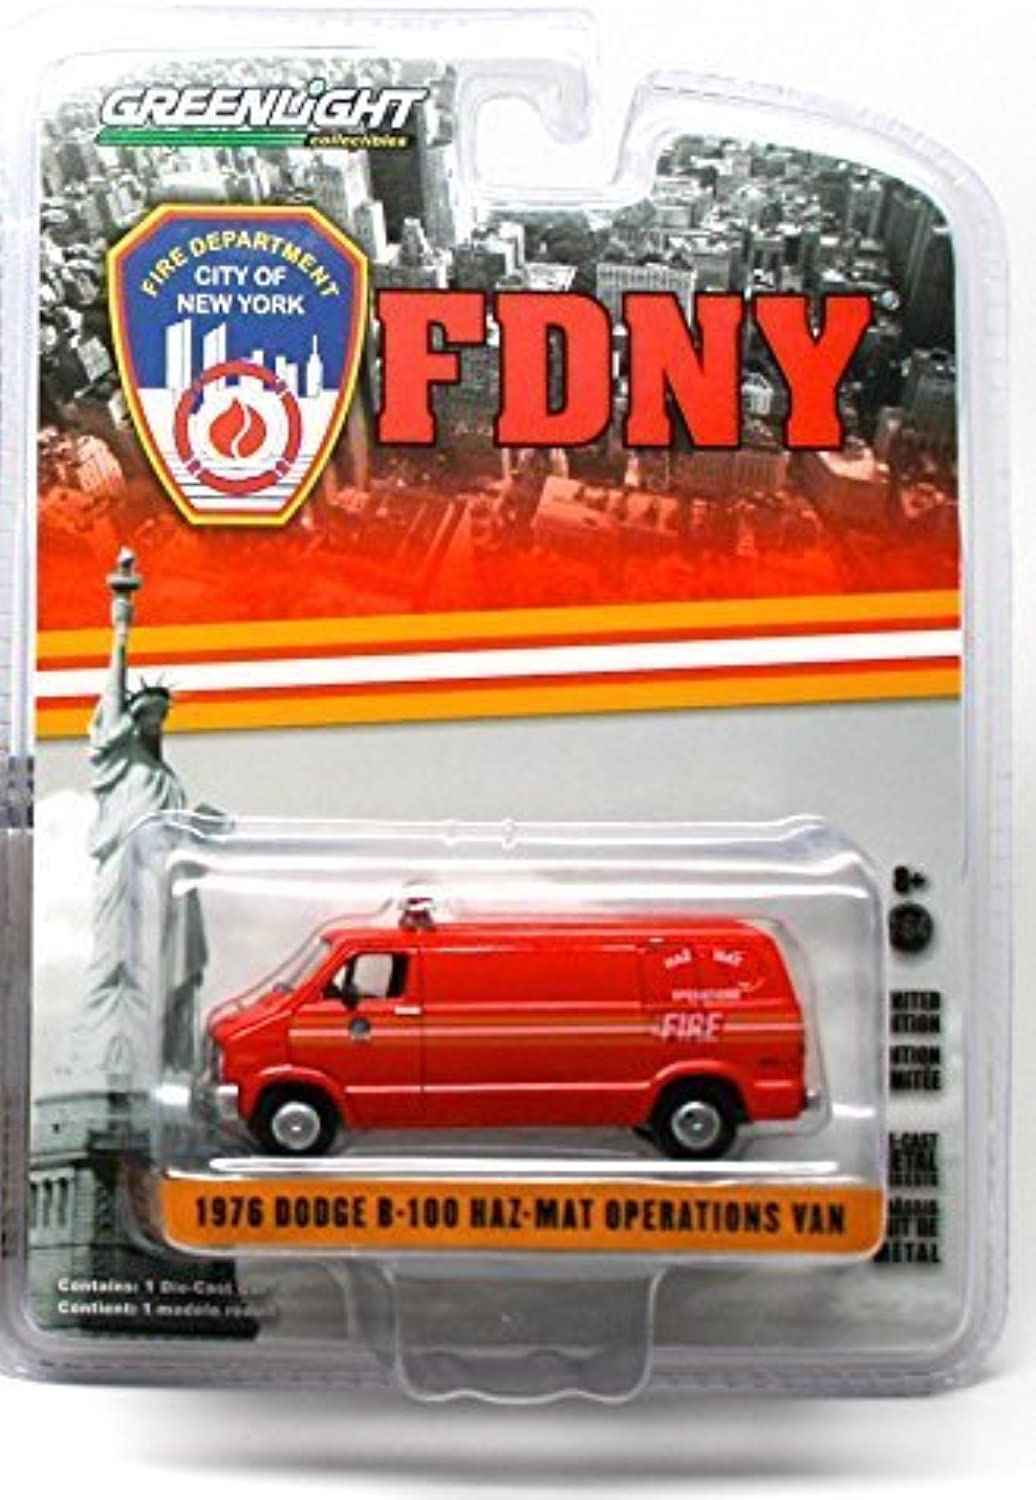 1976 DODGE B100 HAZMAT OPERATIONS VAN  2015 Greenlight Collectibles City of New York Fire Department 1 64 Scale Limited Edition DieCast Vehicle by Greenlight Collectibles